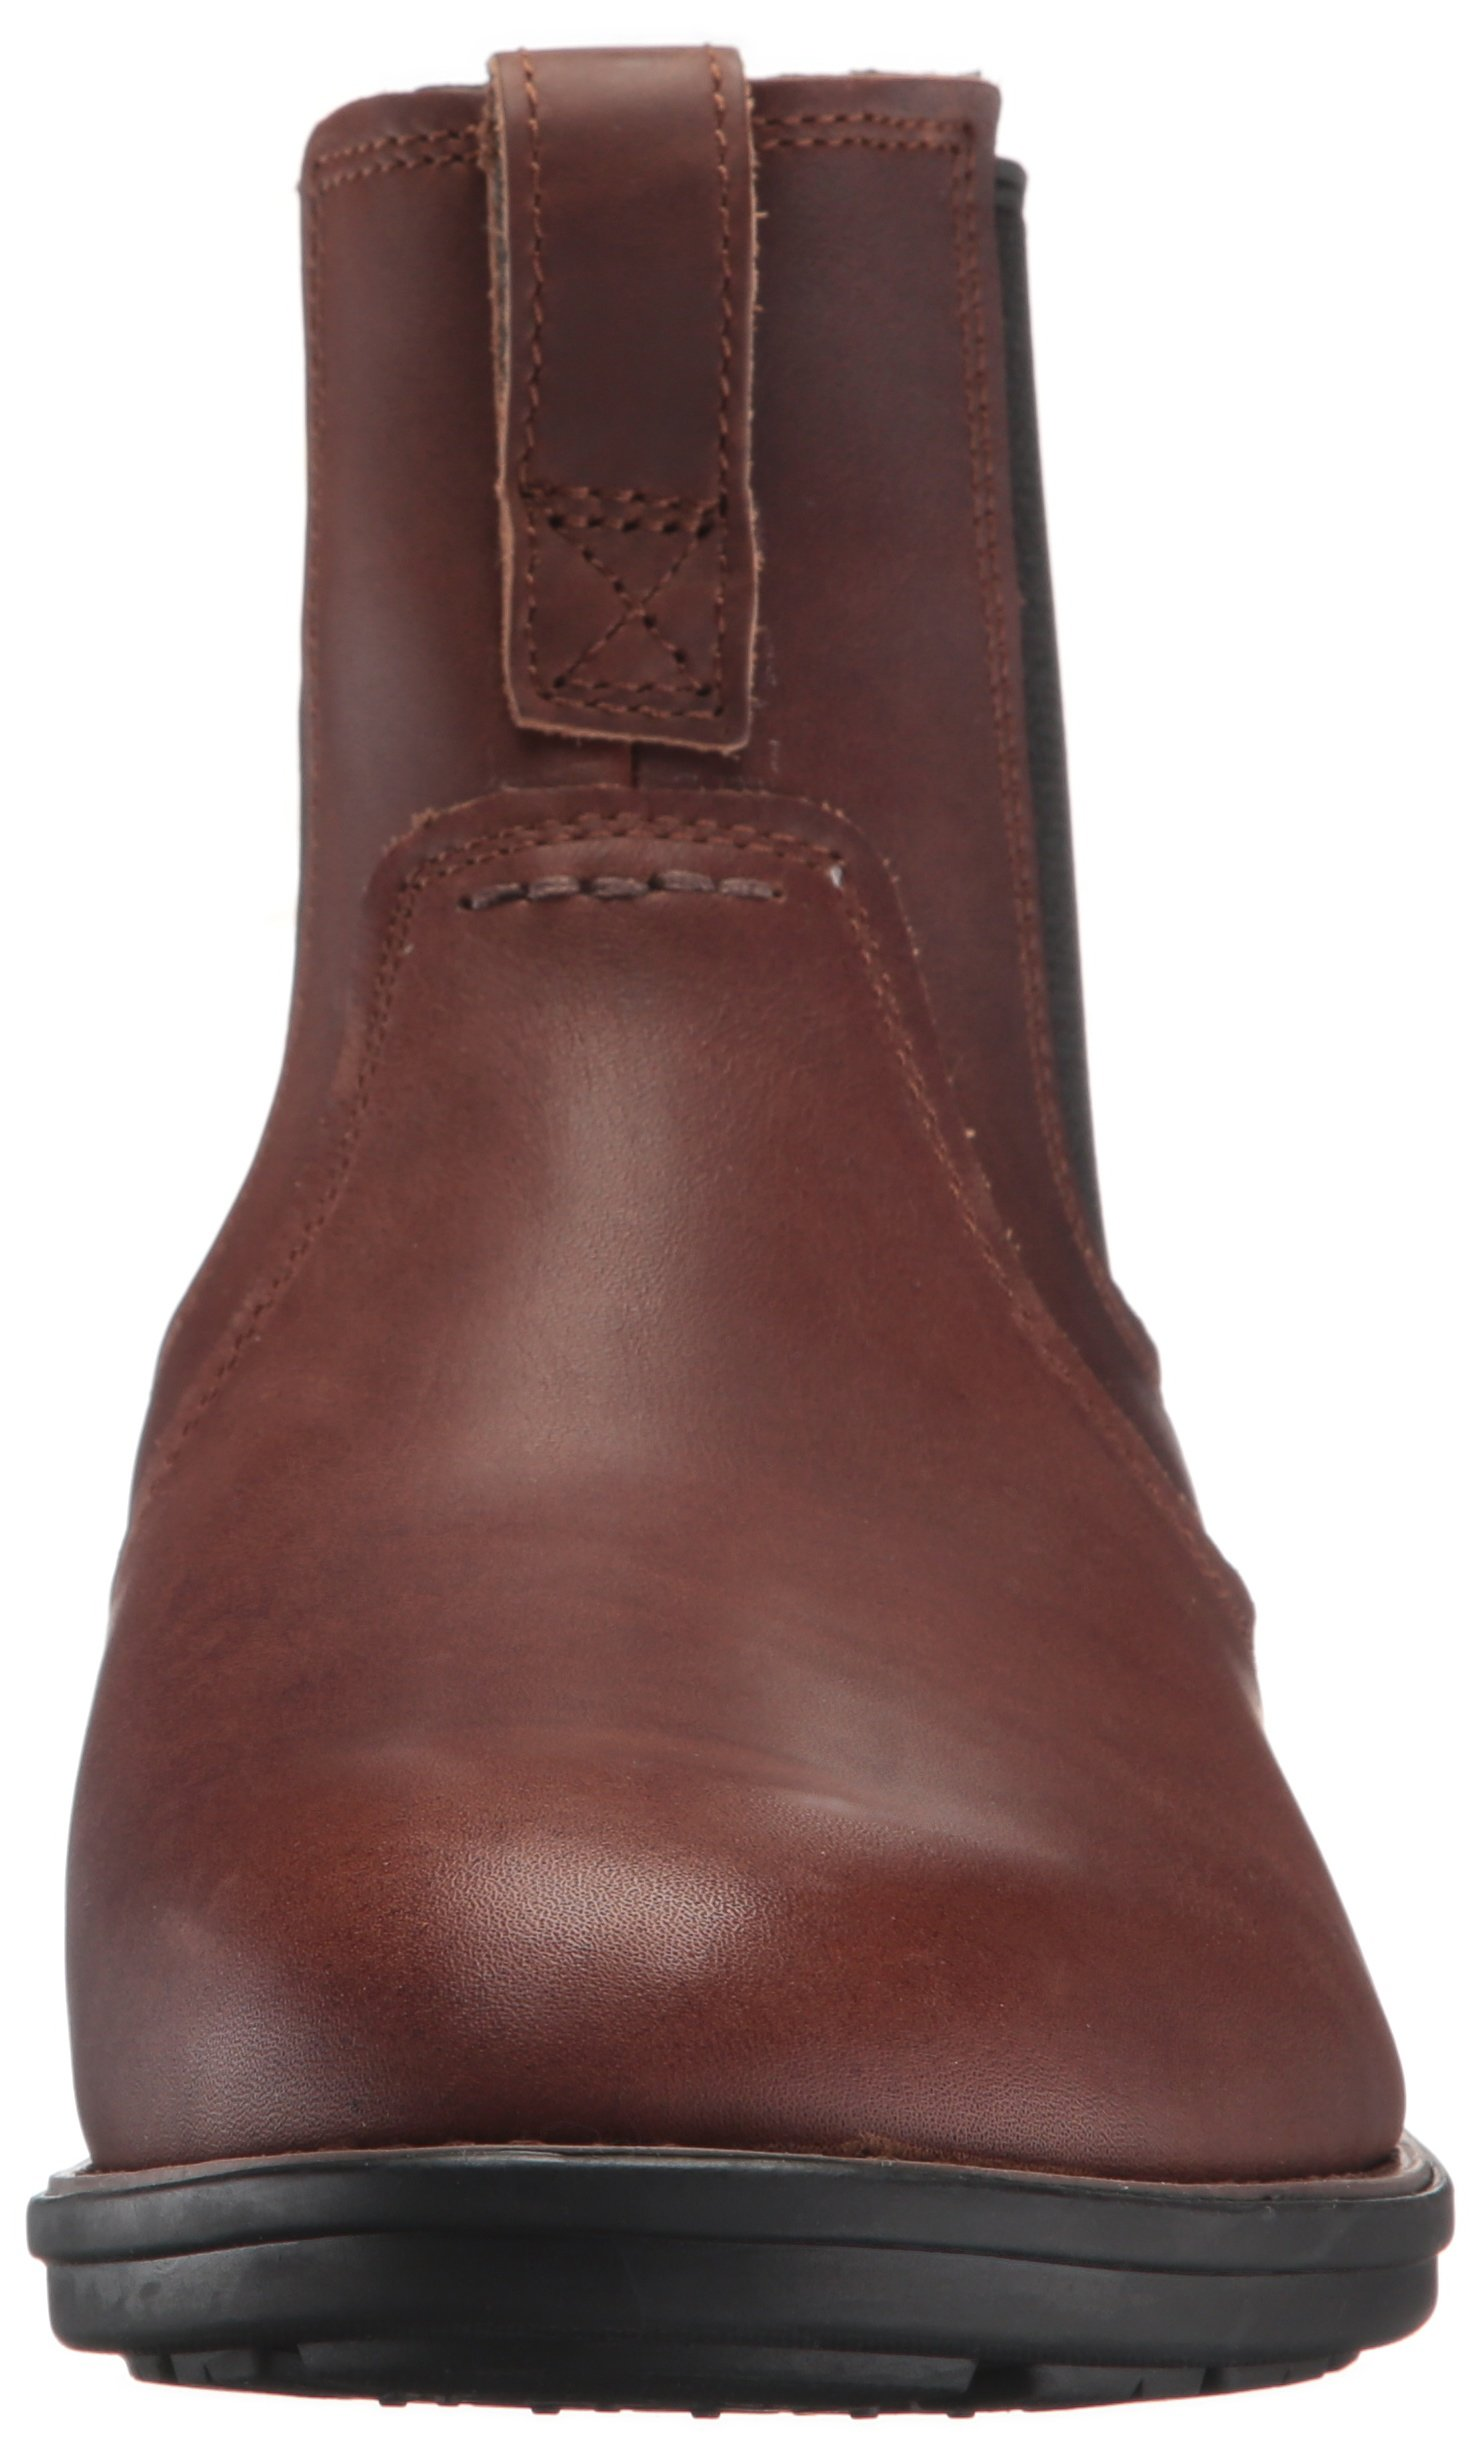 Timberland Men's Carter Notch Chelsea Boot, Dark Brown Full Grain, 14 C US by Timberland (Image #4)